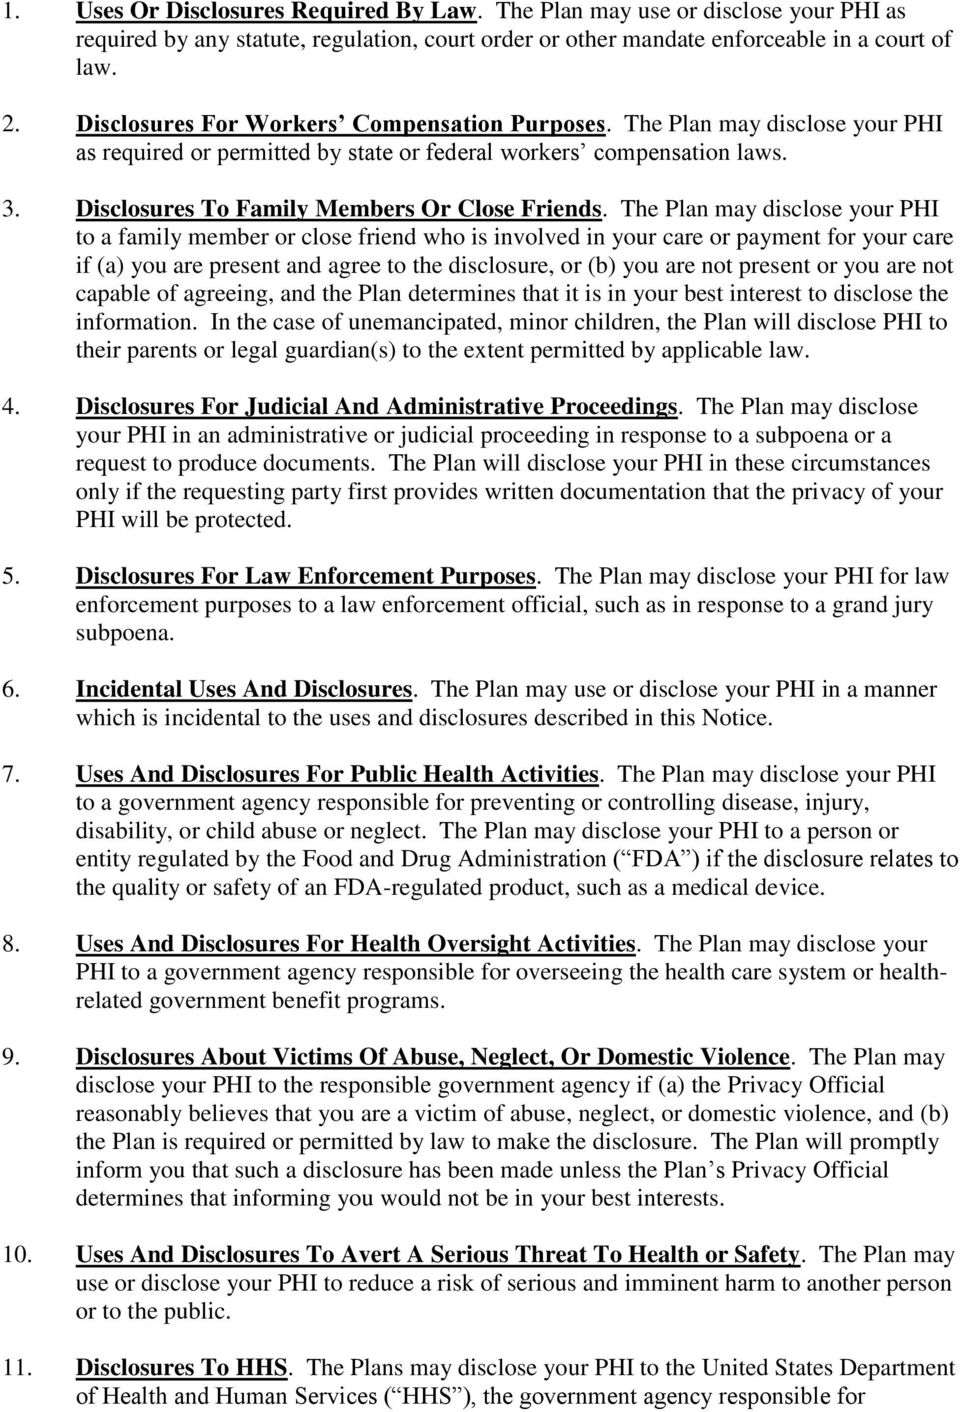 The Plan may disclose your PHI to a family member or close friend who is involved in your care or payment for your care if (a) you are present and agree to the disclosure, or (b) you are not present